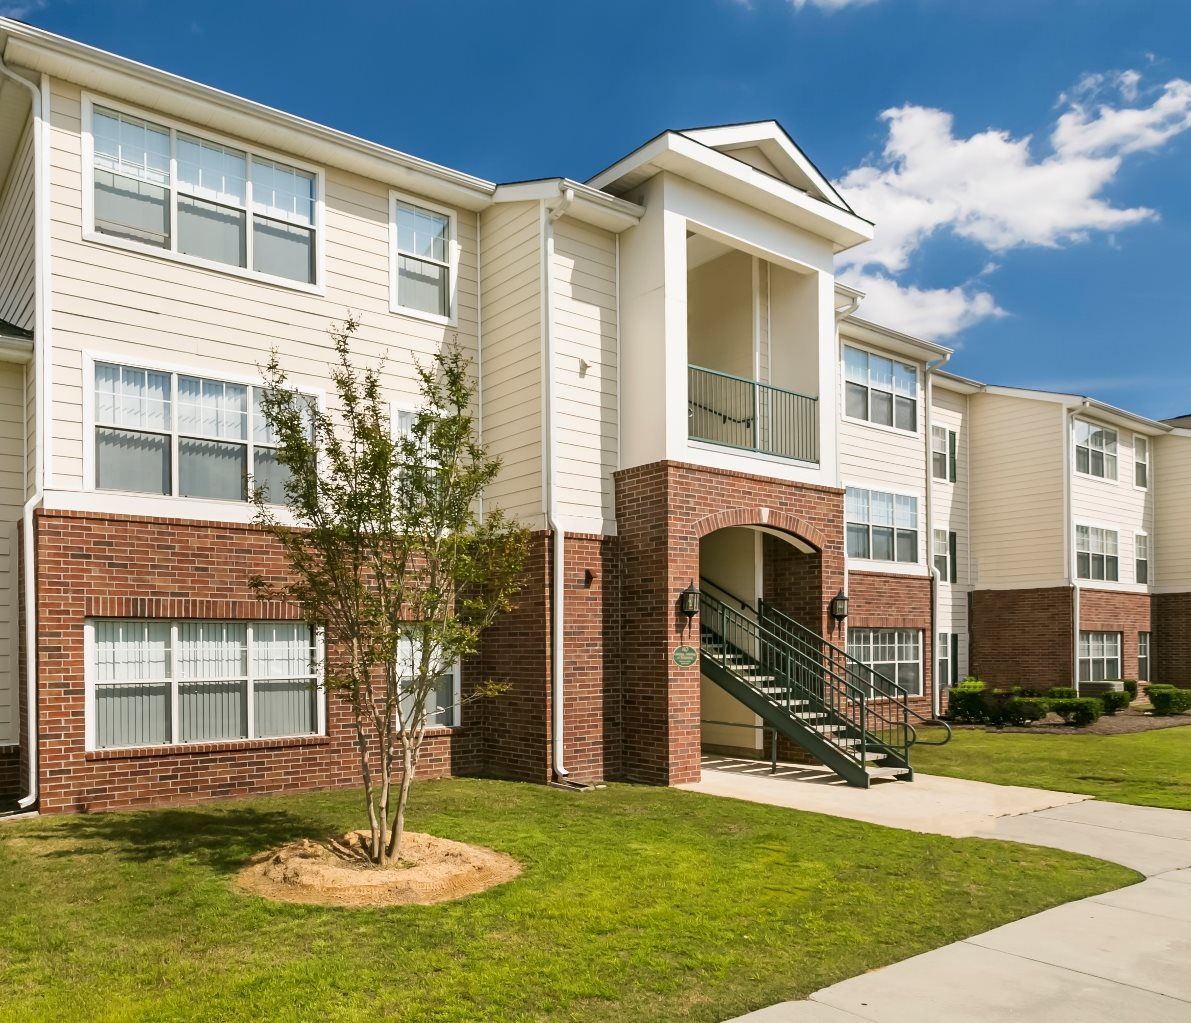 Eagles Pointe Apartments for rent in Brunswick, GA. Make this community your new home or visit other ConcordRENTS communities at ConcordRENTS.com. Building exterior